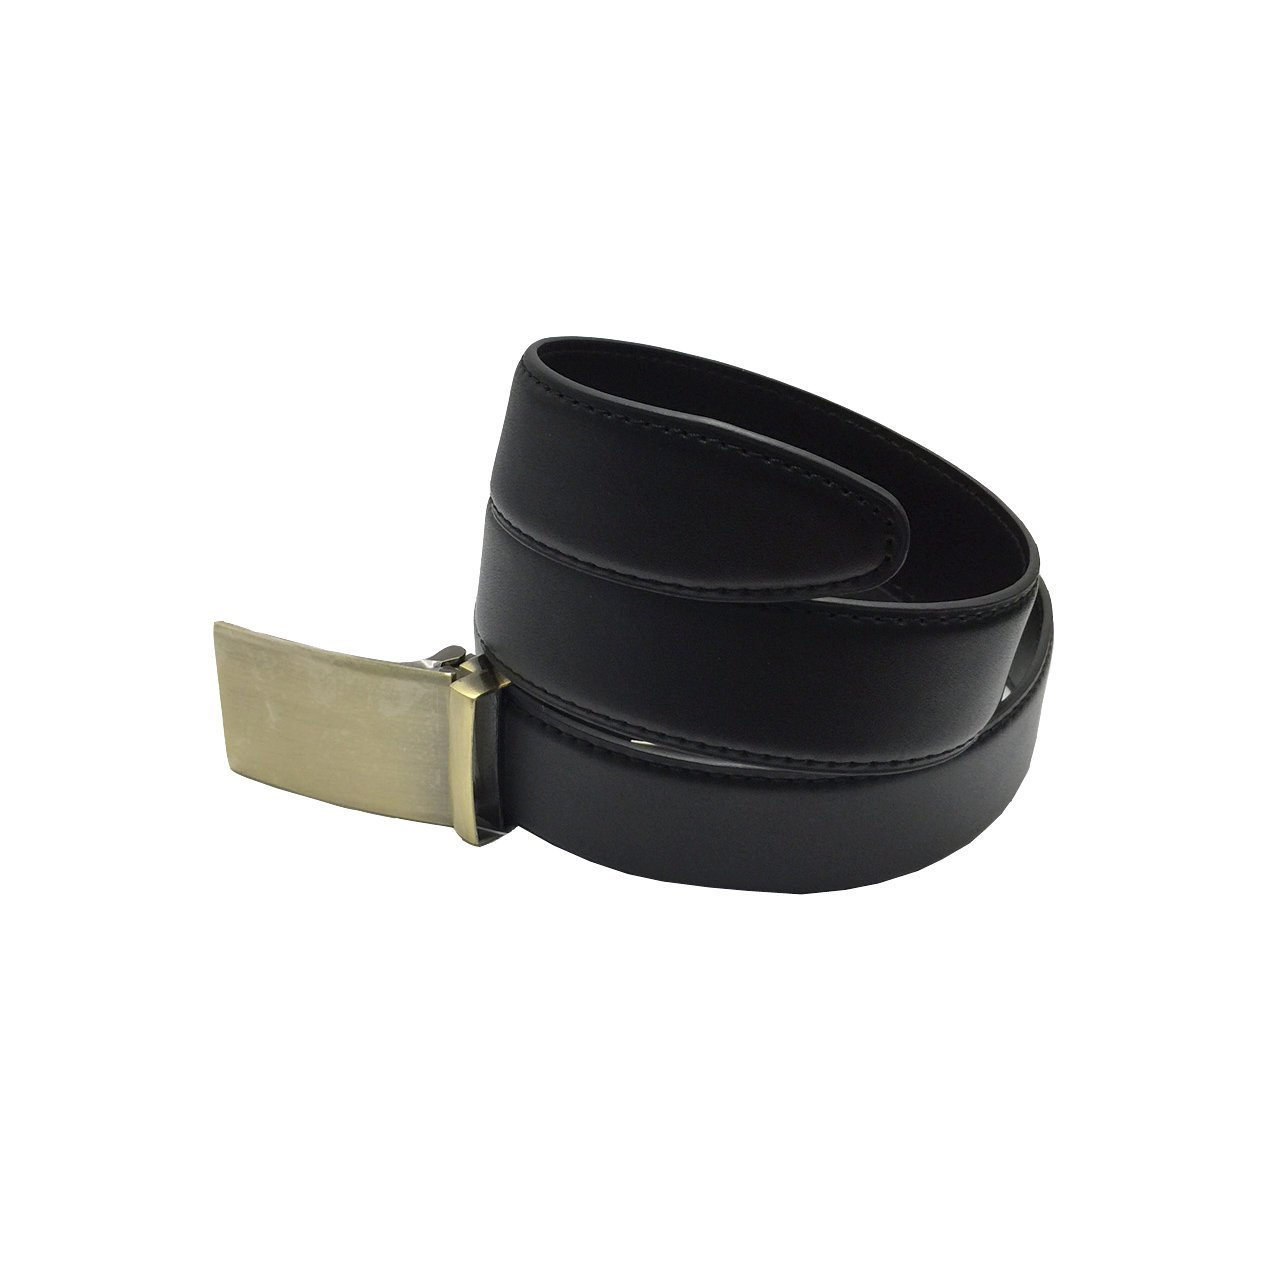 Mens 2-in-1 Reversible Belt Black and Brown with Buckle